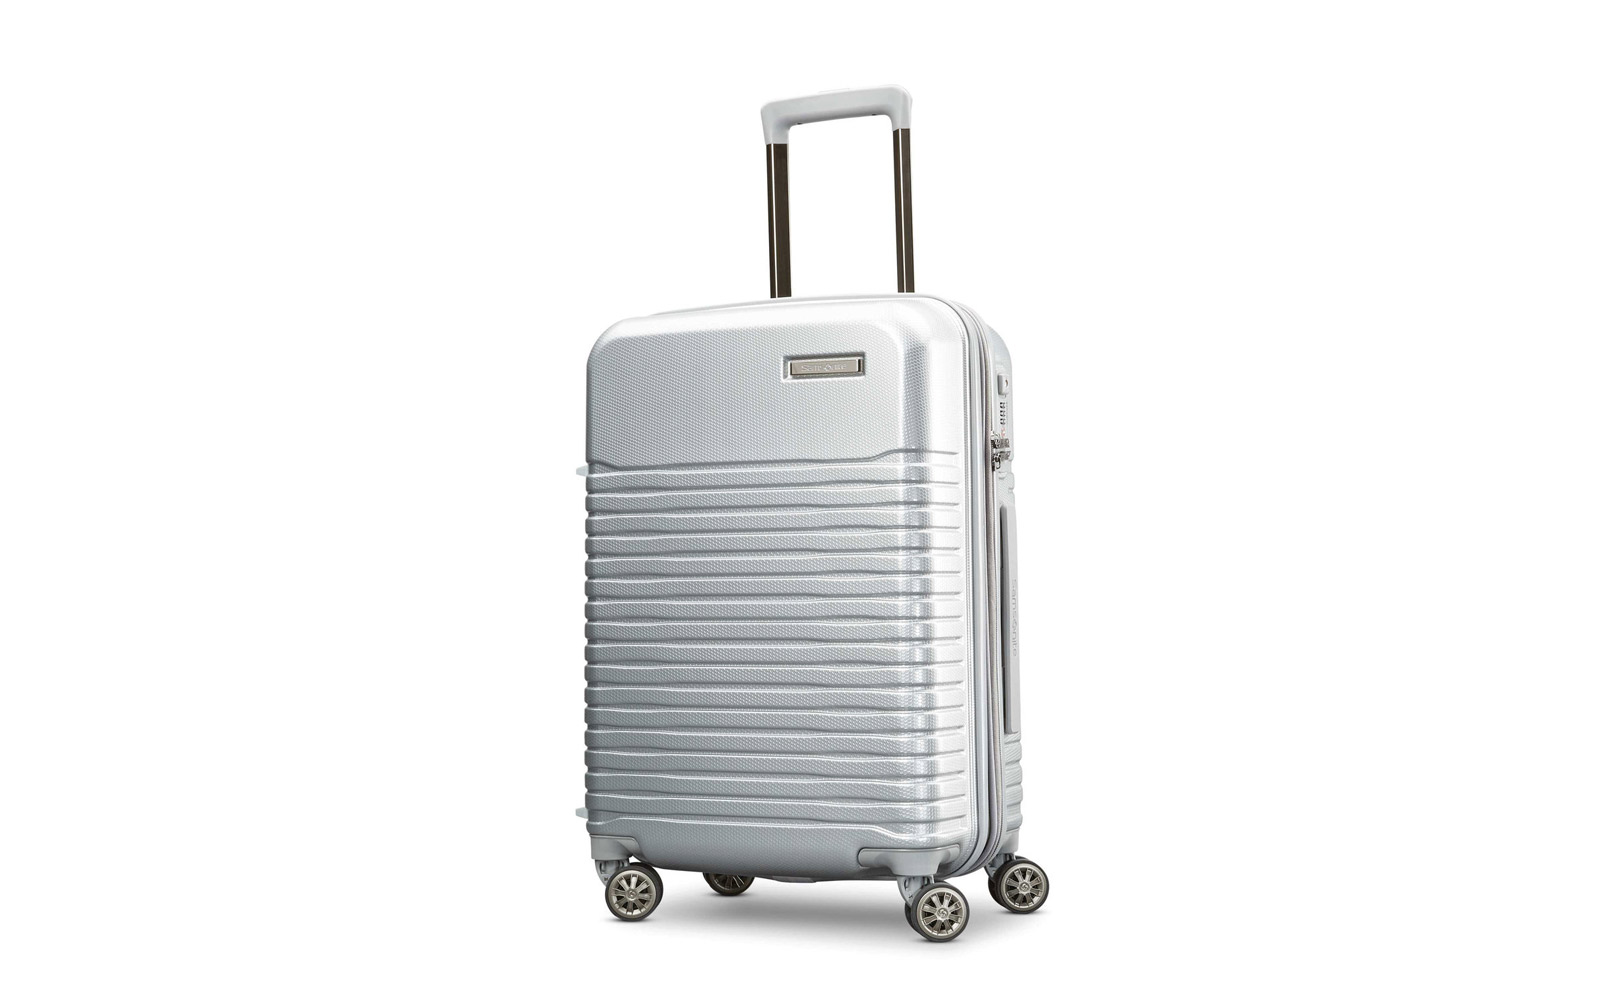 Best Carry-on Spinner: Samsonite Spettro 20-inch Spinner